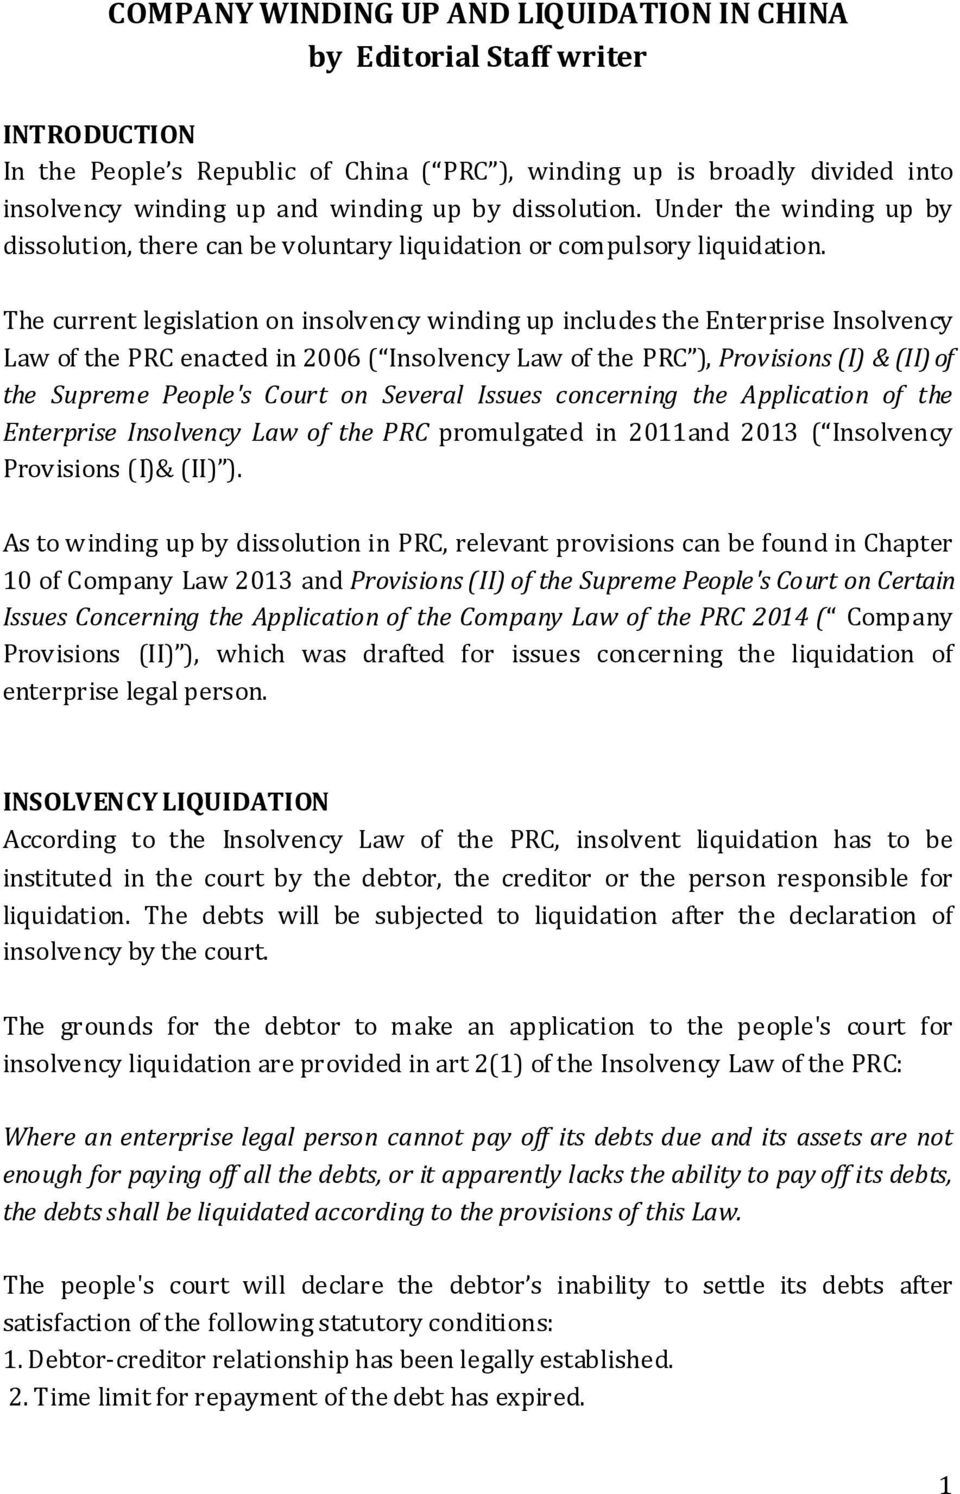 The current legislation on insolvency winding up includes the Enterprise Insolvency Law of the PRC enacted in 2006 ( Insolvency Law of the PRC ), Provisions (I) & (II) of the Supreme People's Court